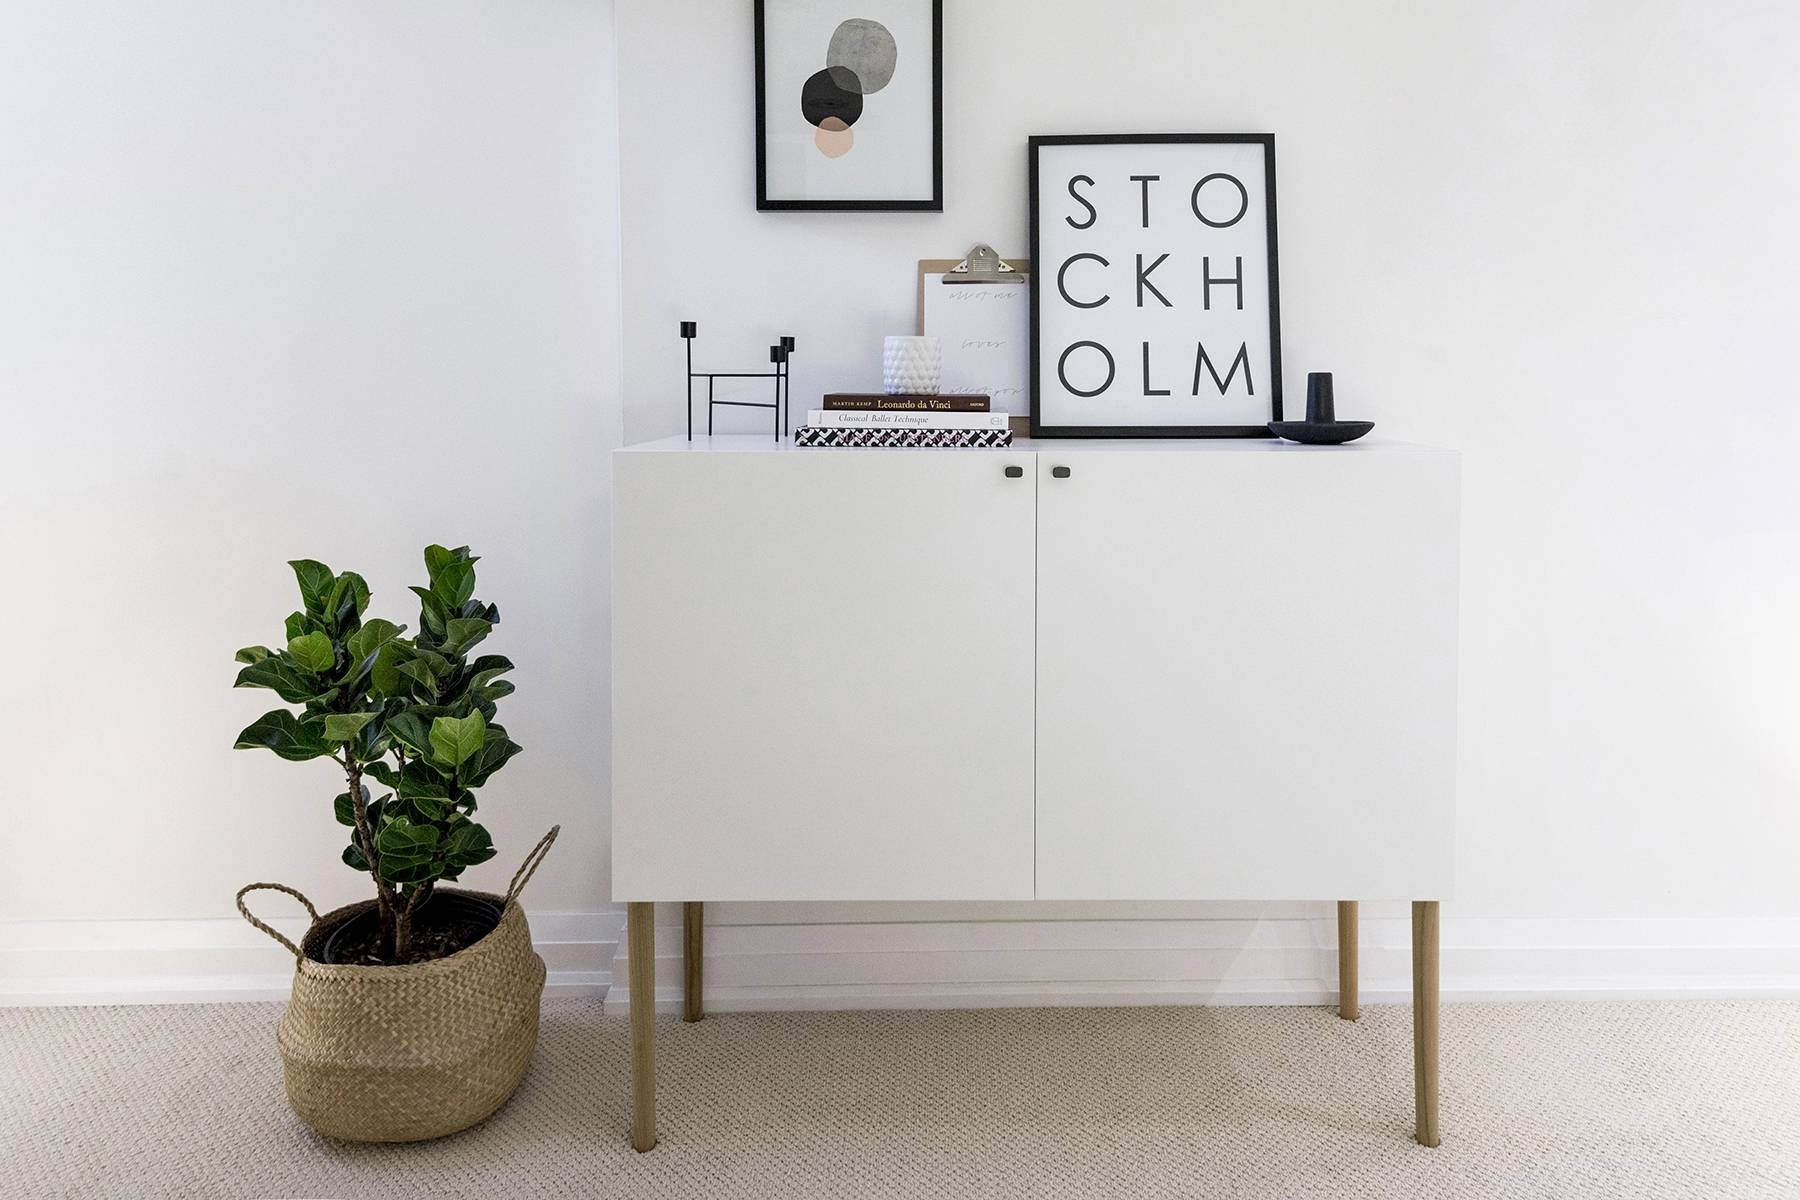 Ikea Besta Hack: Scandinavian Sideboard Cabinet | Happy Grey Lucky With Regard To Most Current Ikea Besta Sideboards (#8 of 15)